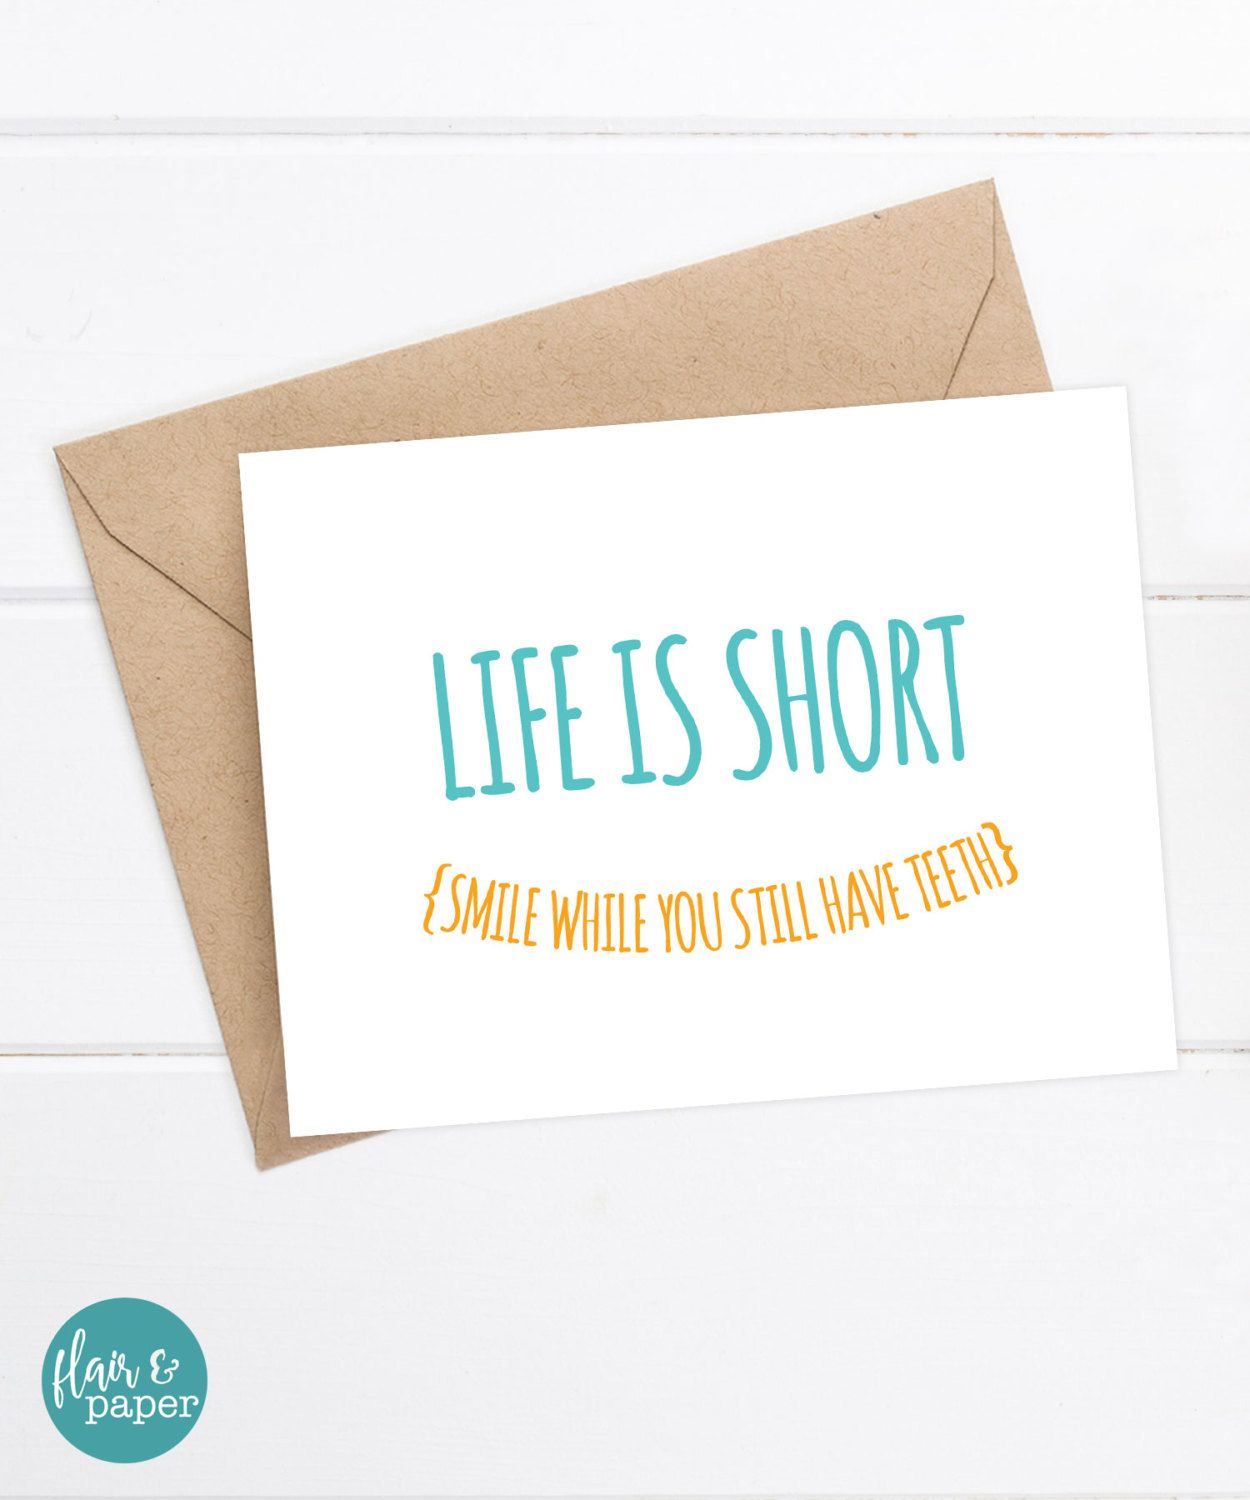 Funny Birthday Card Life Is Short Funny Sister Birthday Etsy Funny Birthday Cards Birthday Cards Funny Friend Birthday Card Sayings